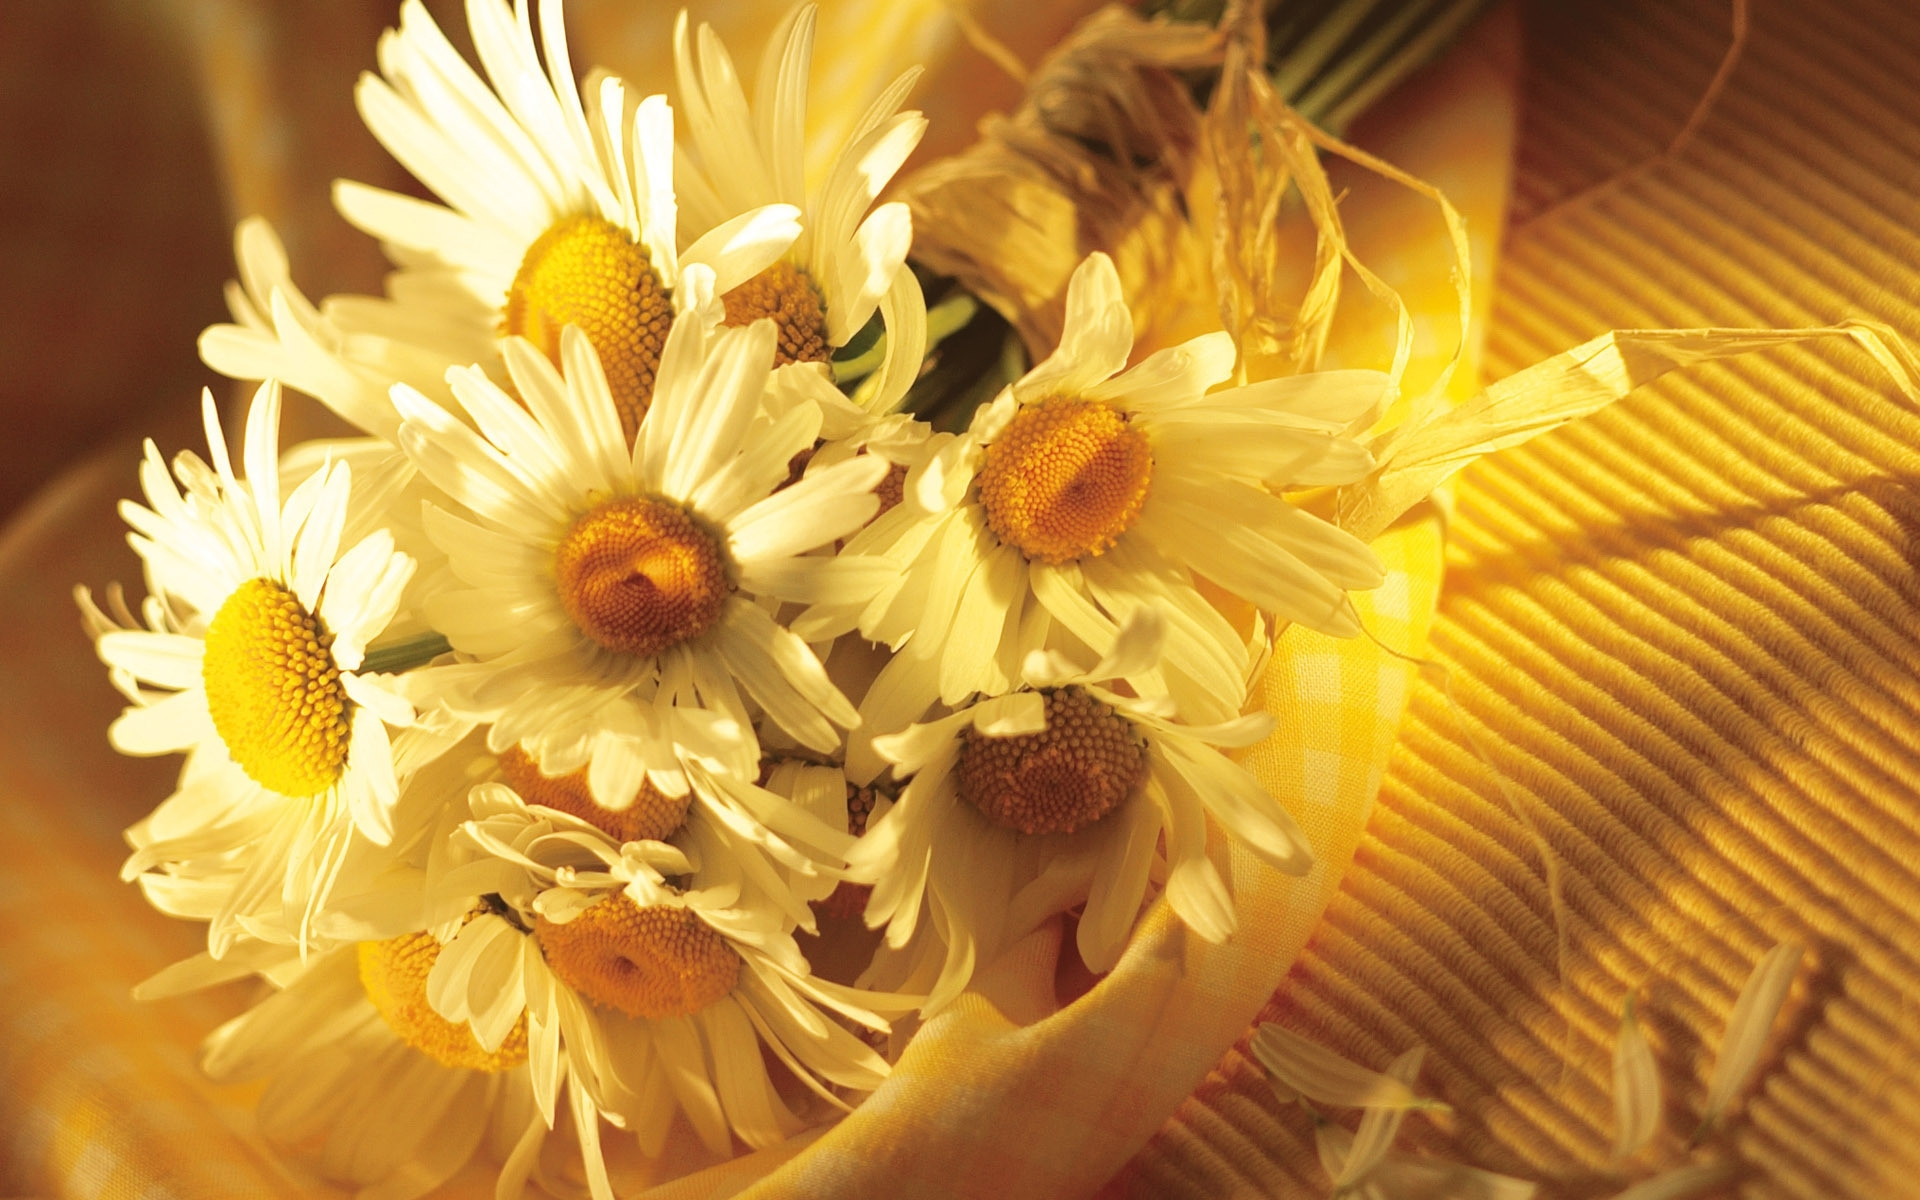 44594 download wallpaper Plants, Flowers, Camomile screensavers and pictures for free